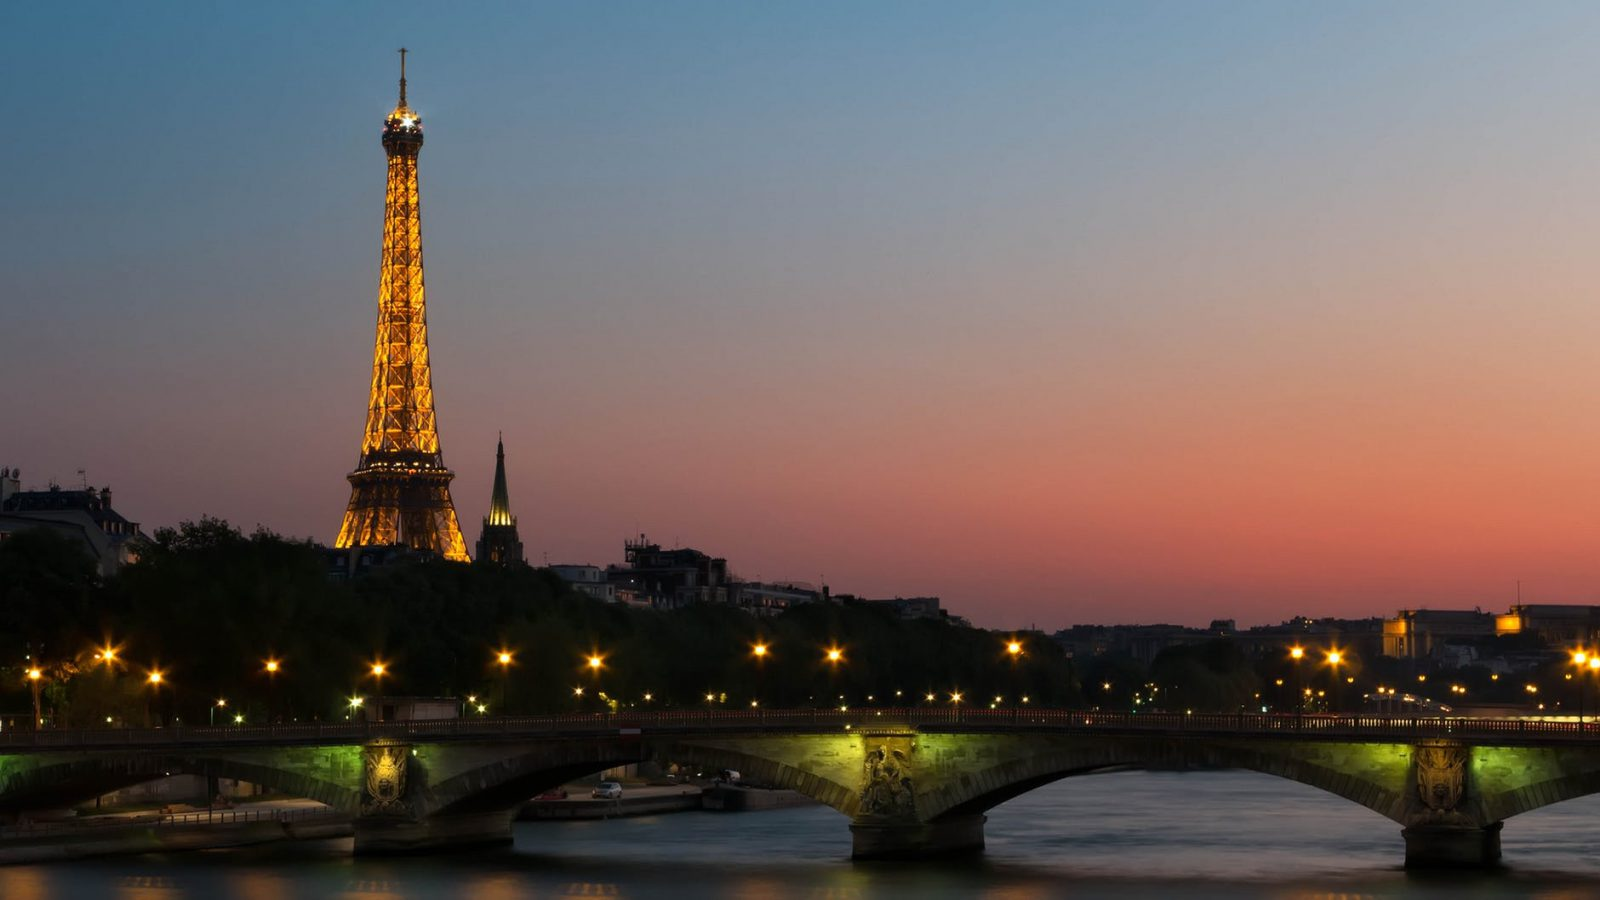 Hotel Deal For Paris France #parisfrance #usholiday #christmasday